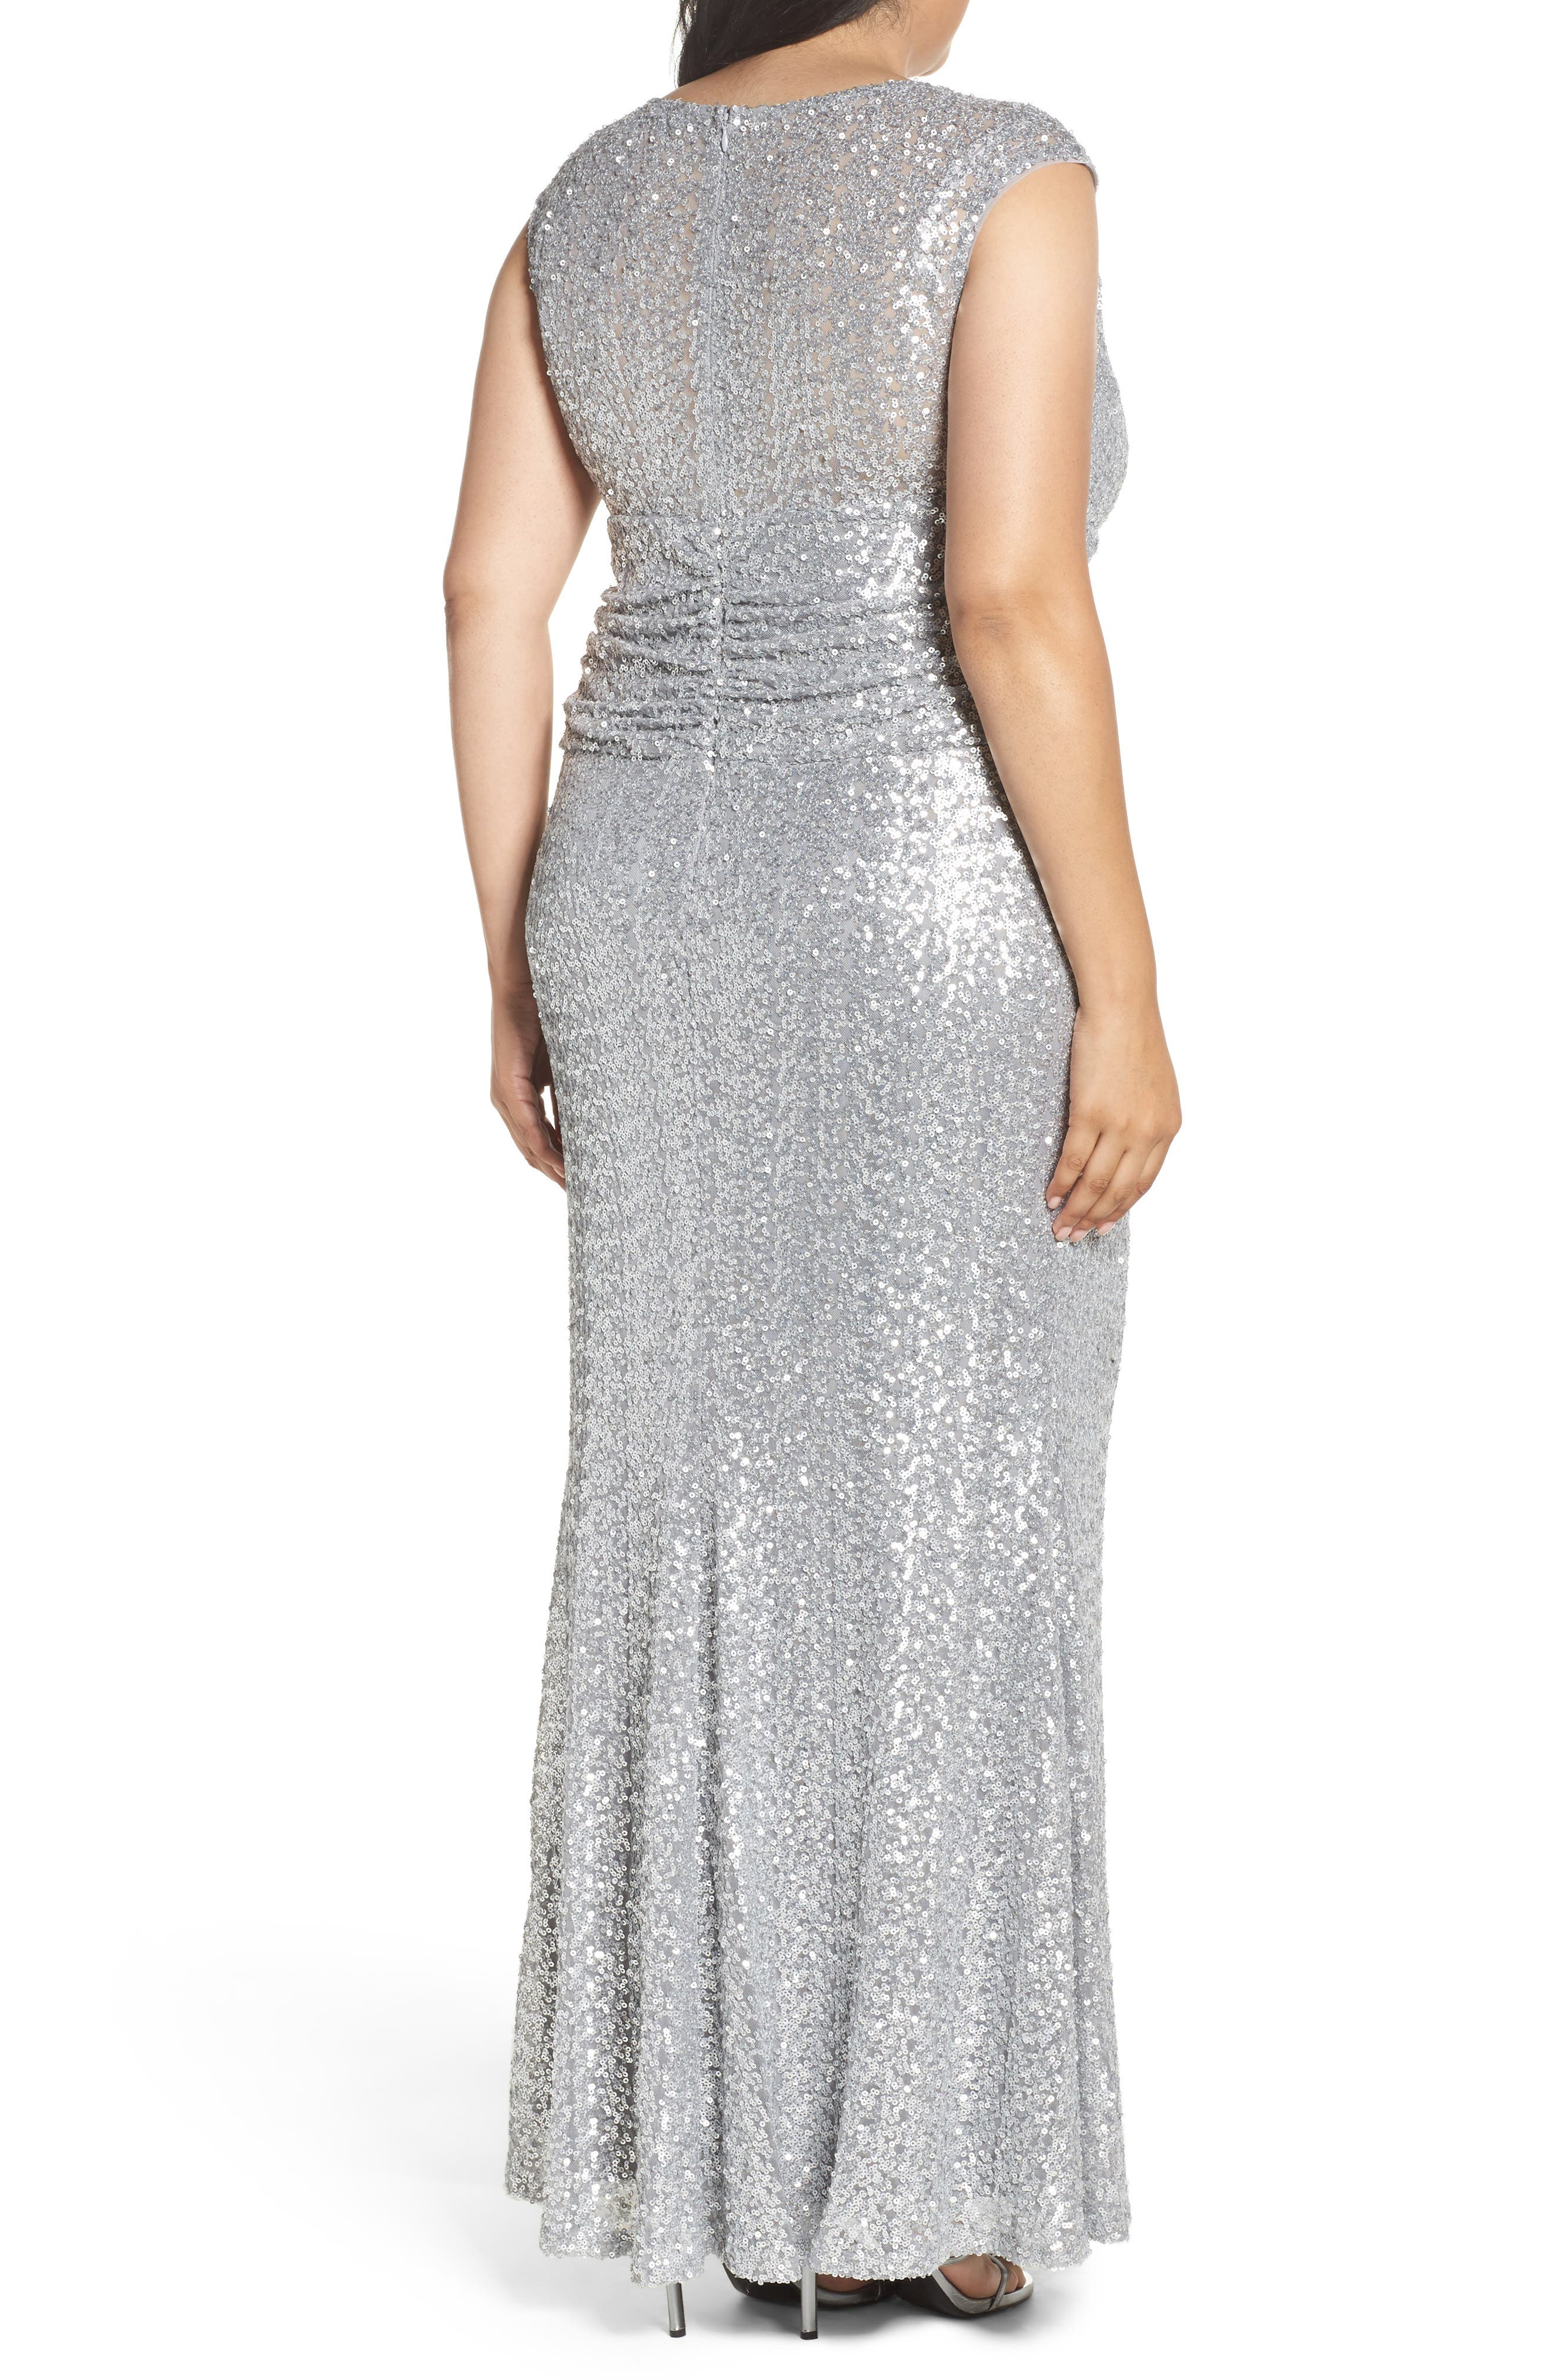 Cutout Sequin Lace Gown,                             Alternate thumbnail 2, color,                             040